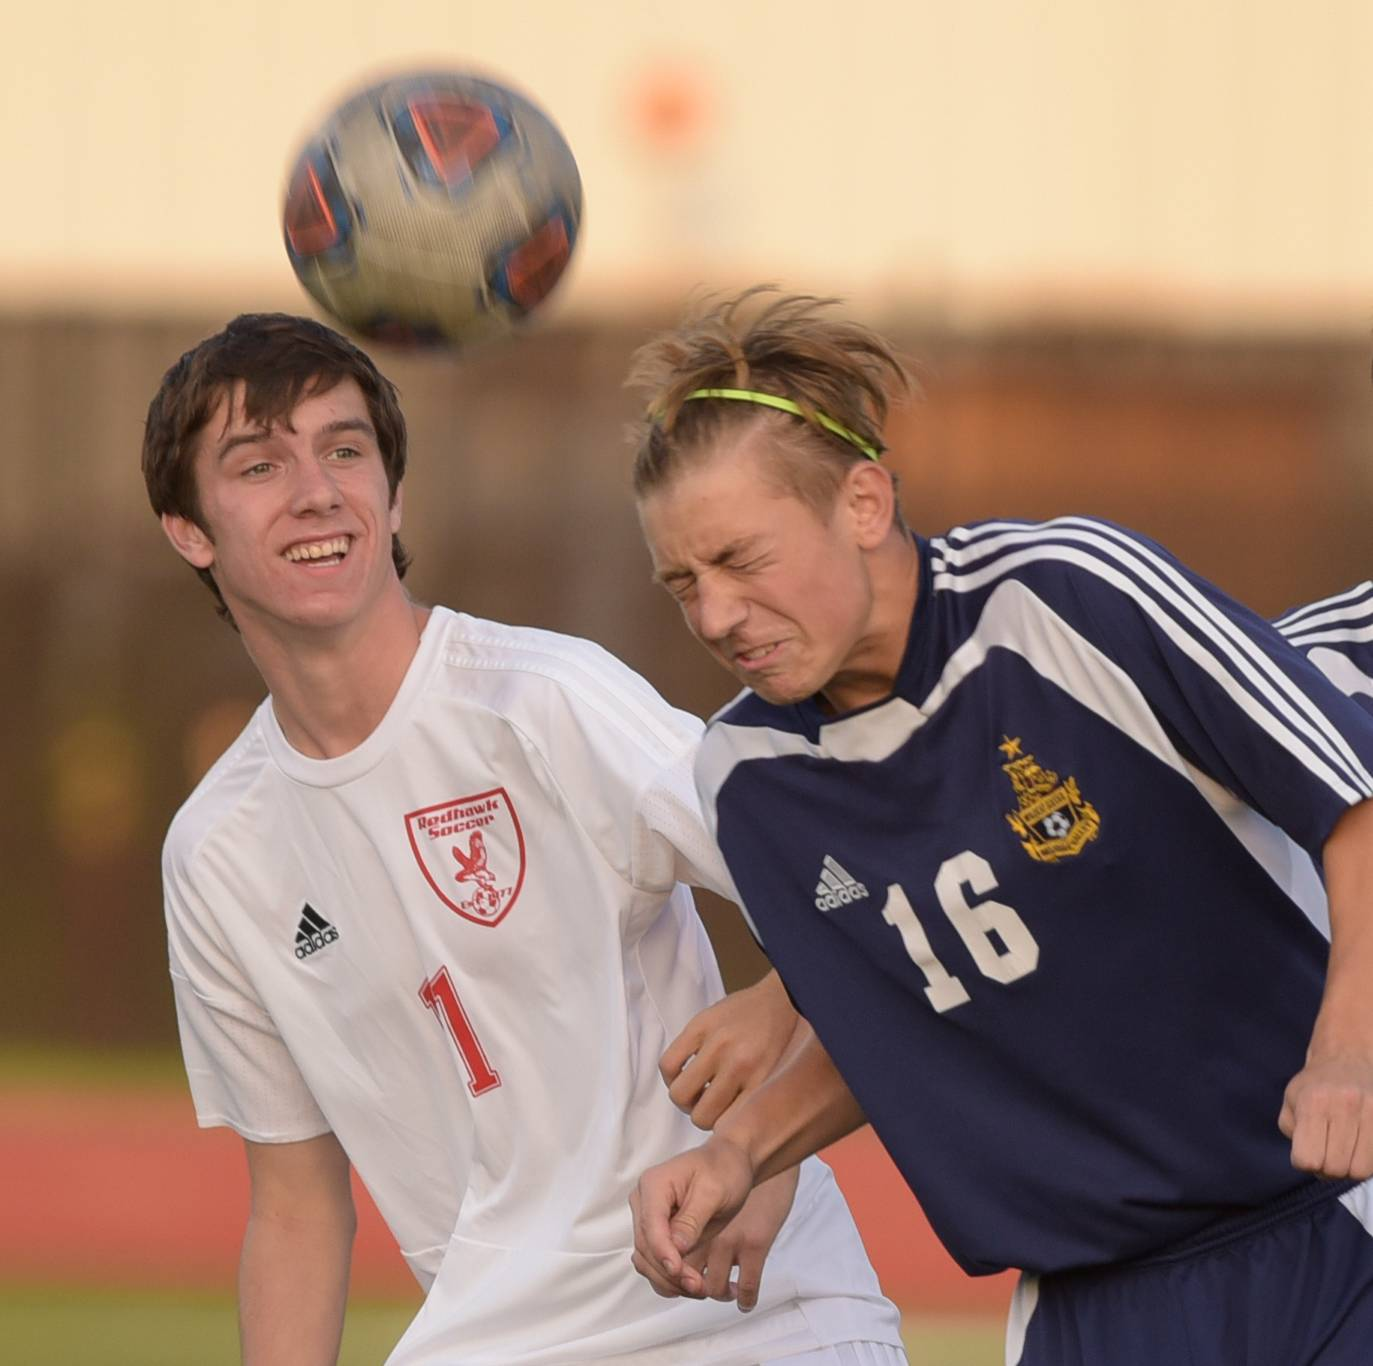 Naperville Central's Brad Palagi (1) and Neuqua Valley's Nate Kuper (16) battle for control of the ball during varsity boys soccer in Naperville on September 12, 2017.